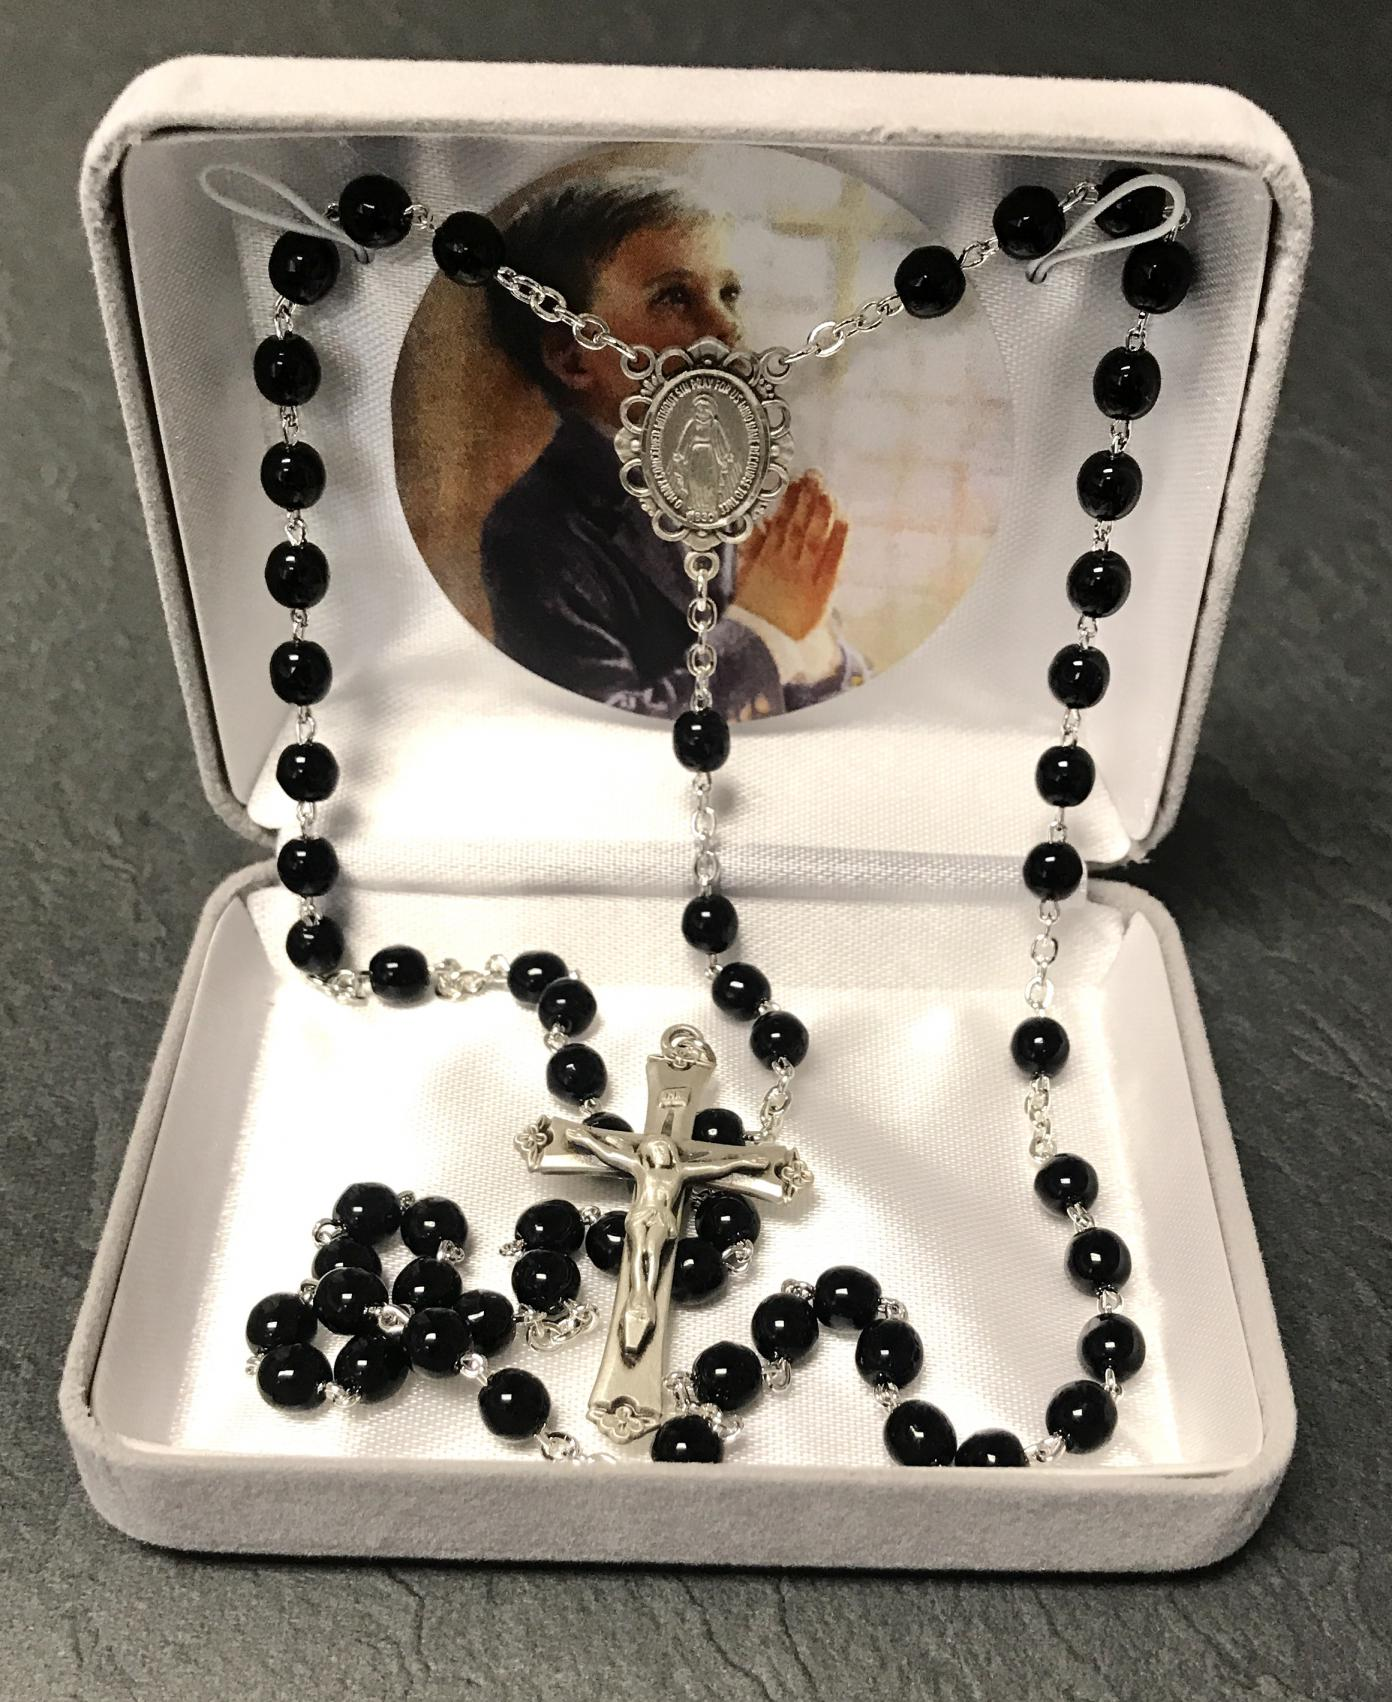 5mm BLACK STERLING SILVER WIRE & CHAIN FC ROSARY GIFT BOXED